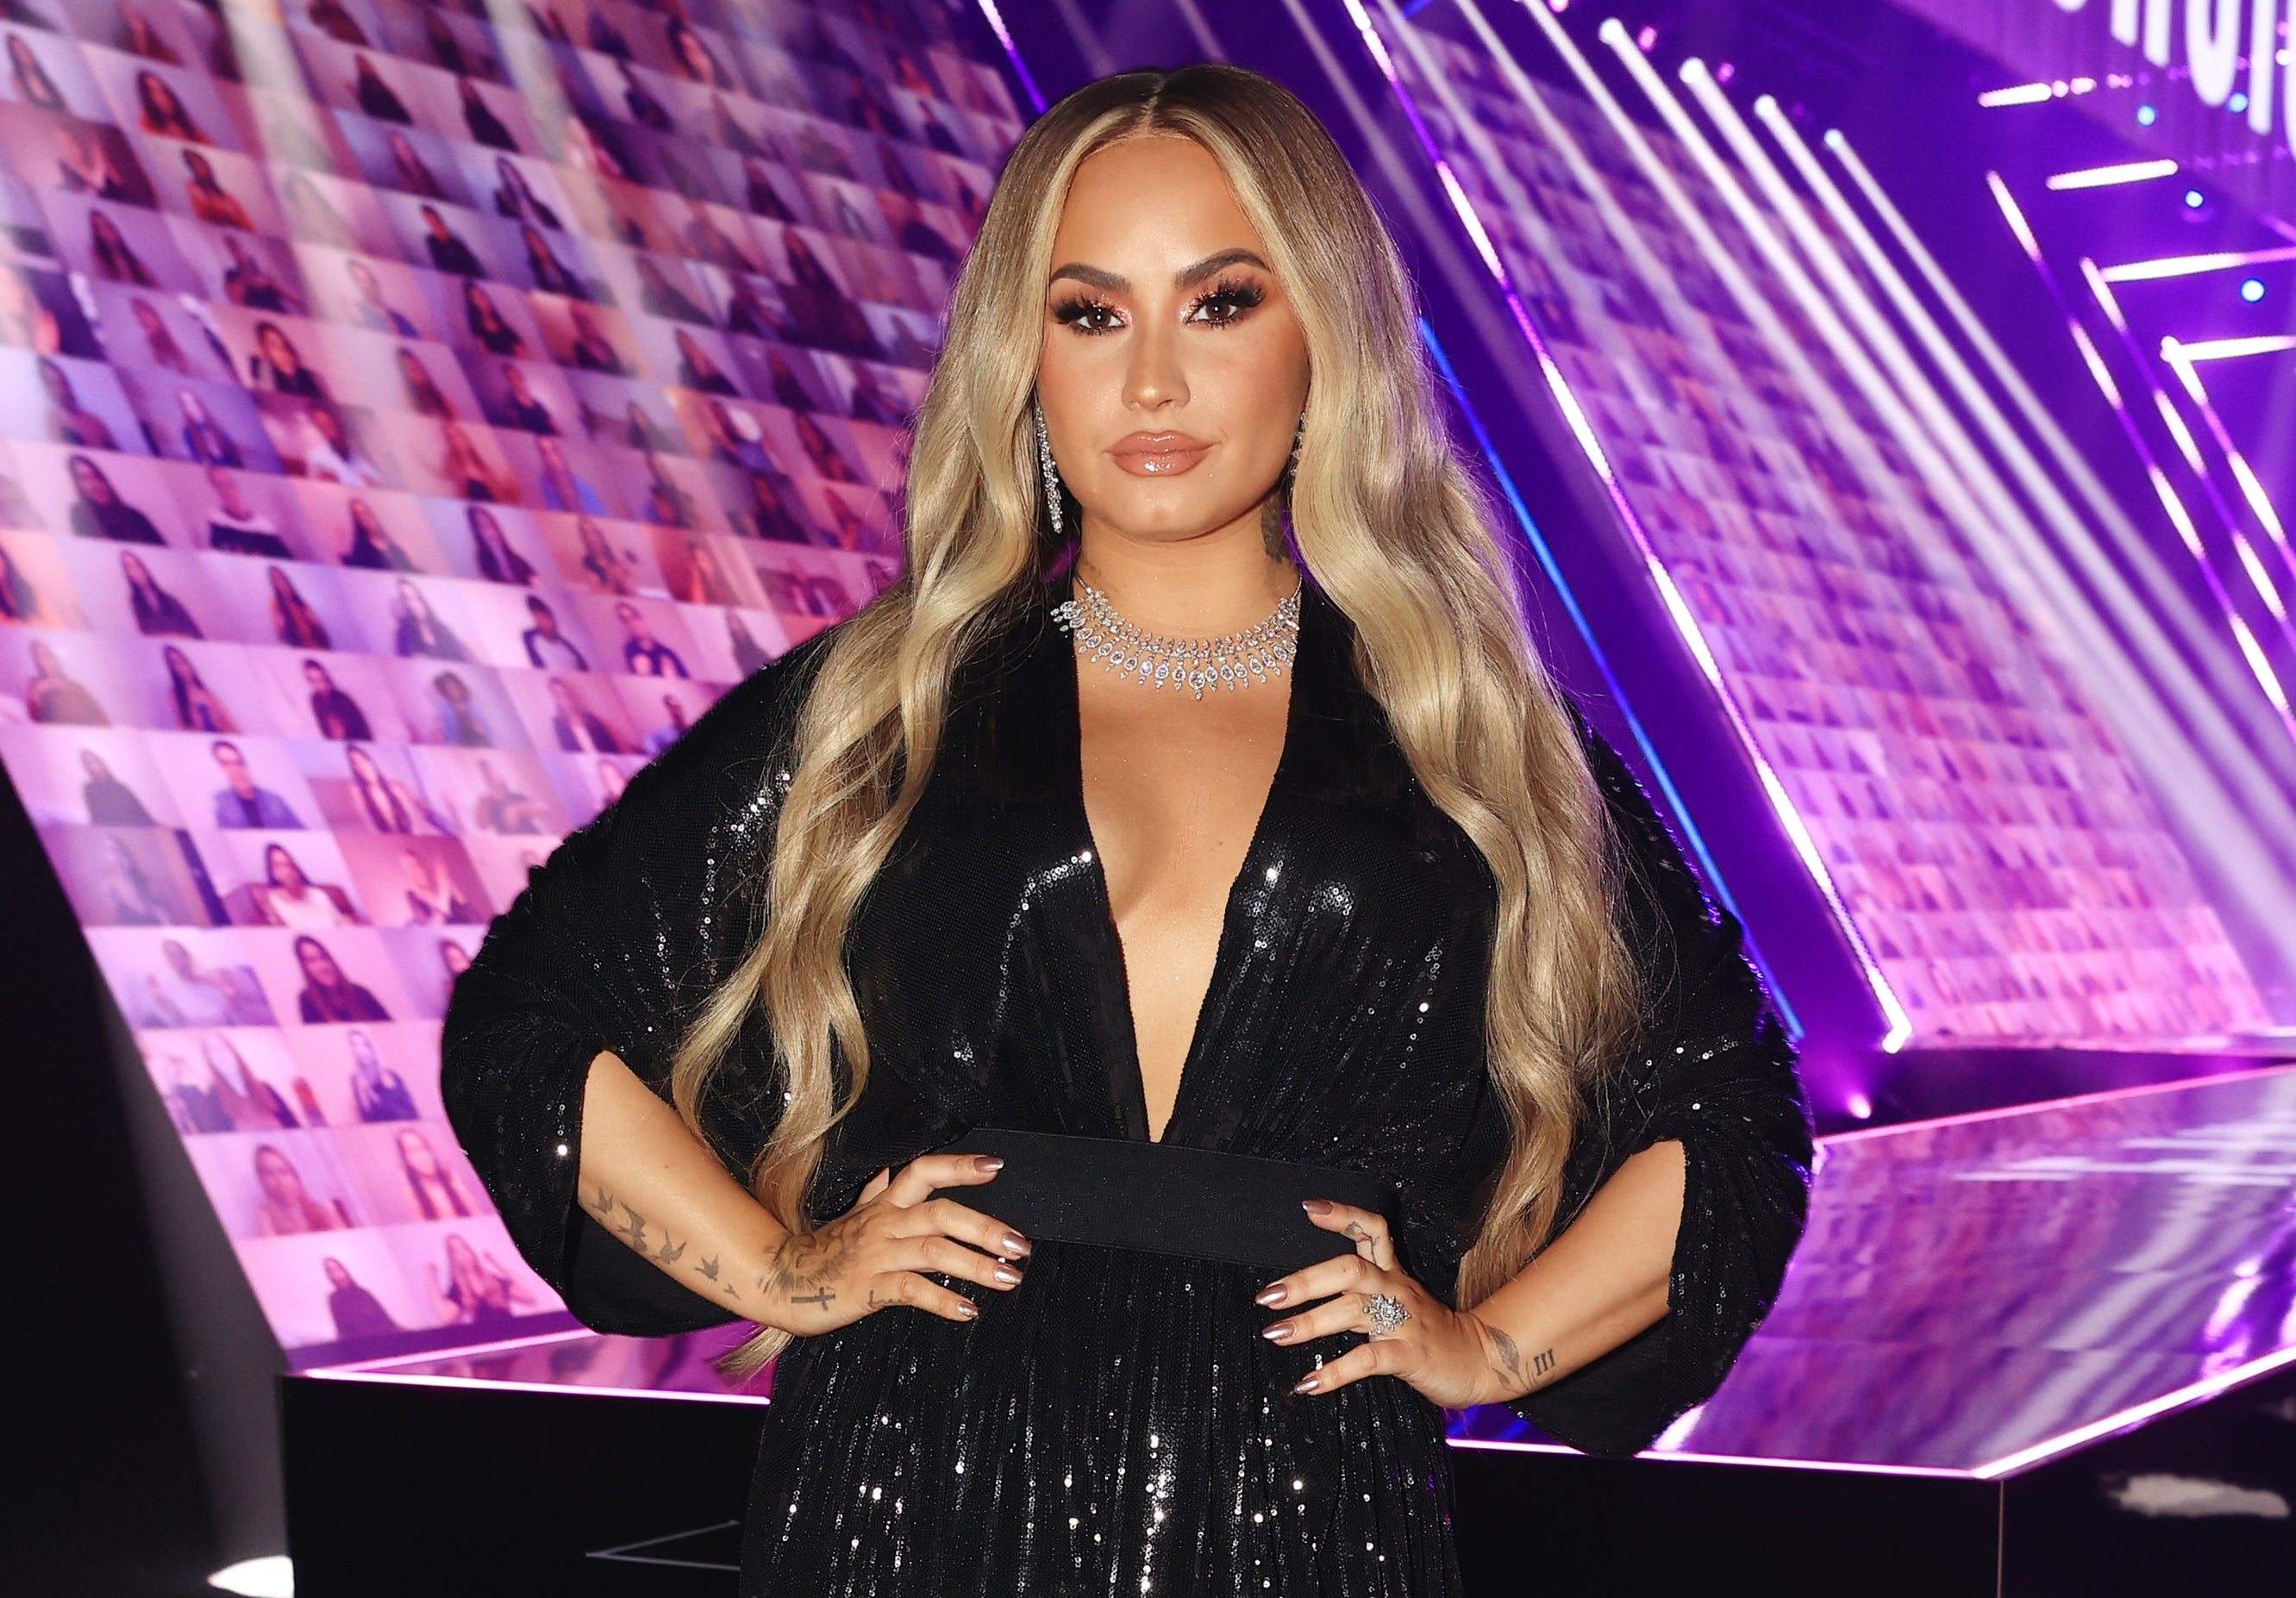 Demi has long blonde hair at a recent event